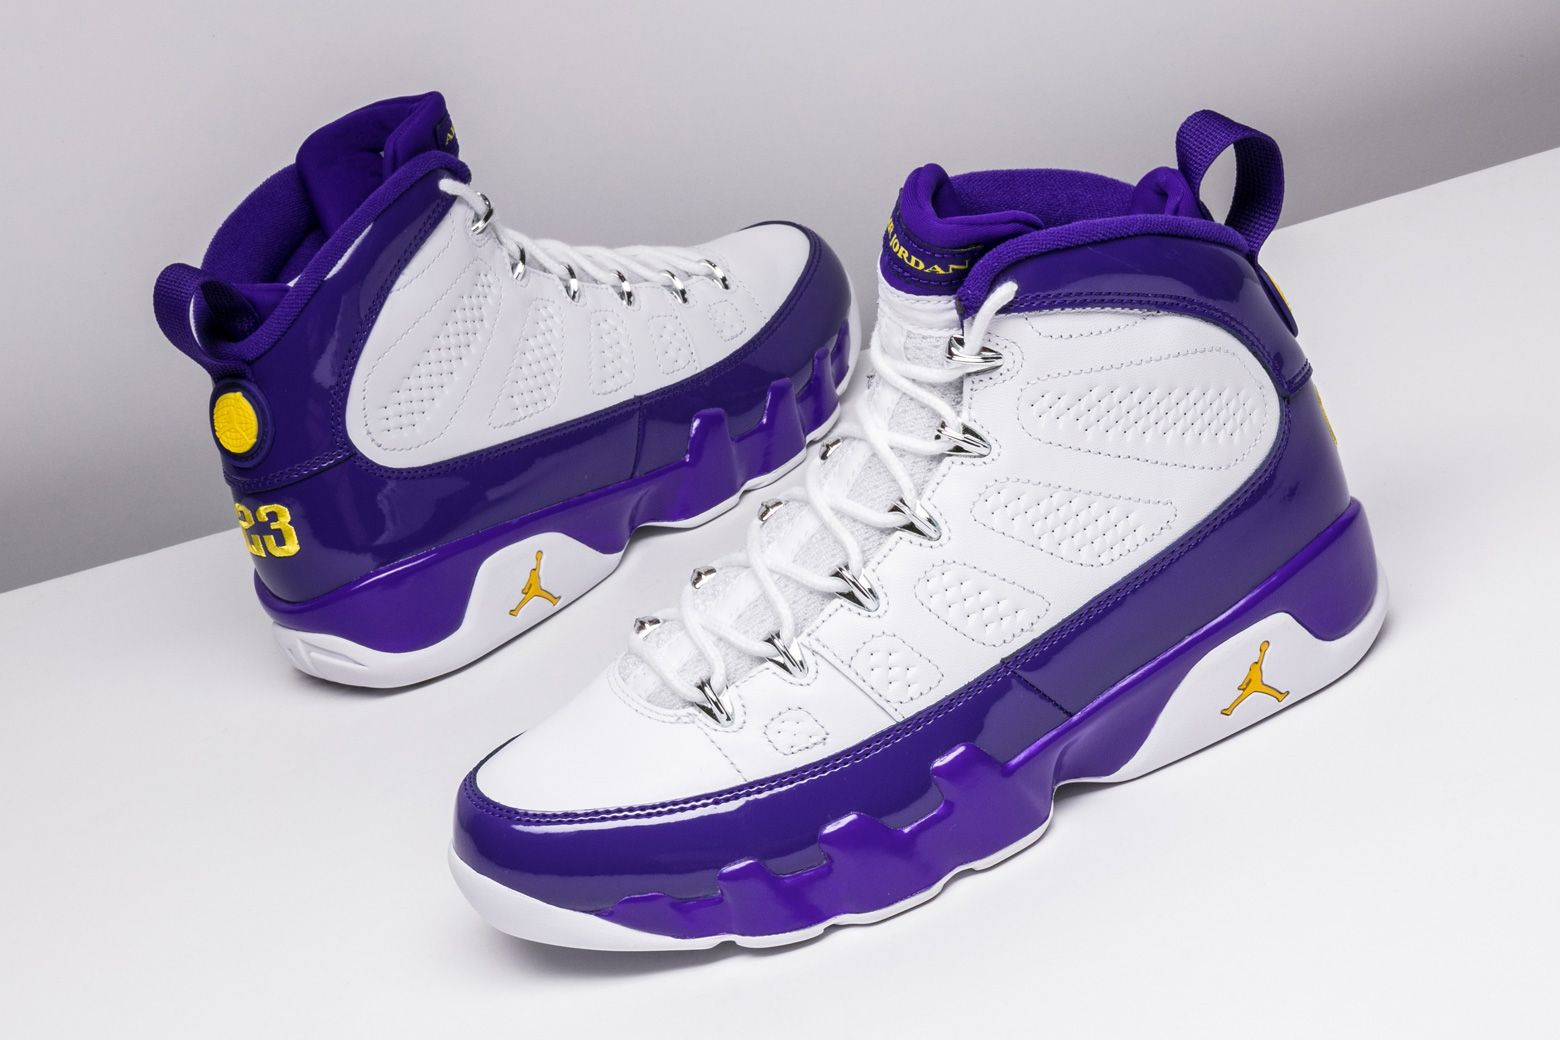 cc8832b7380 The master honors the student with the Los Angeles Lakers-centric Air  Jordan 9